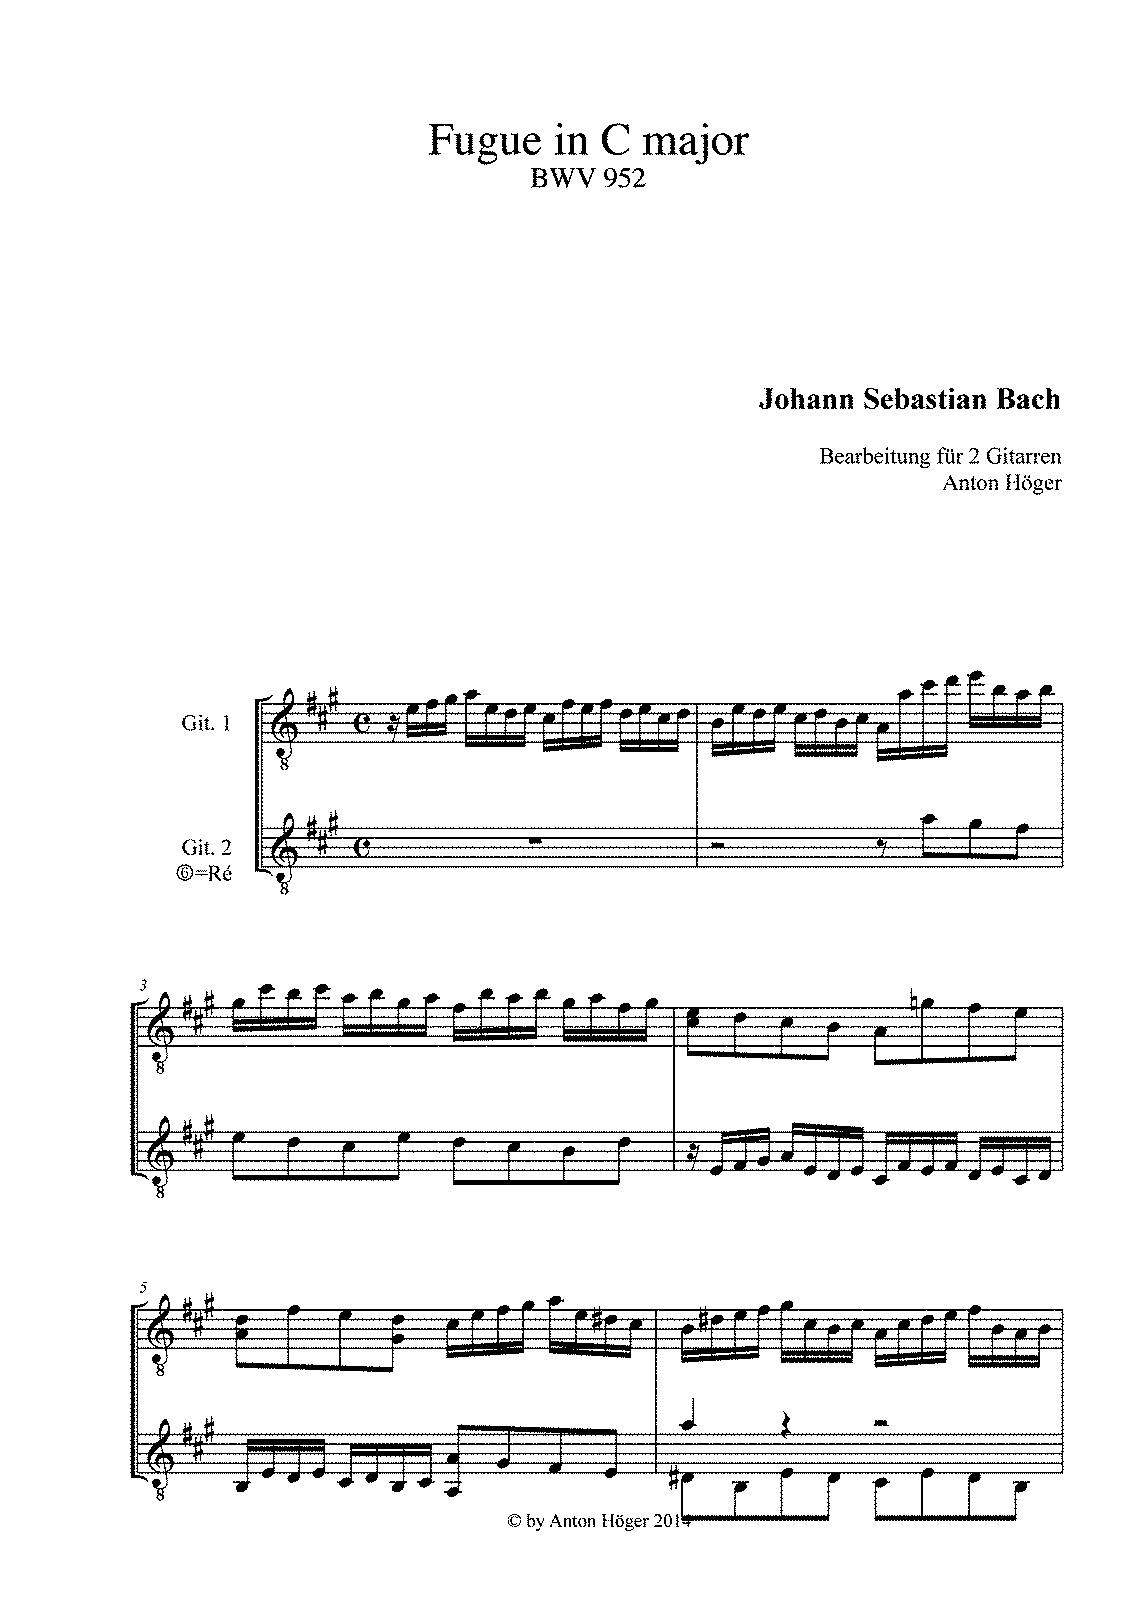 PMLP180808-Bach, Joh. Seb. - Fugue in C major BWV 952 -2Git.pdf